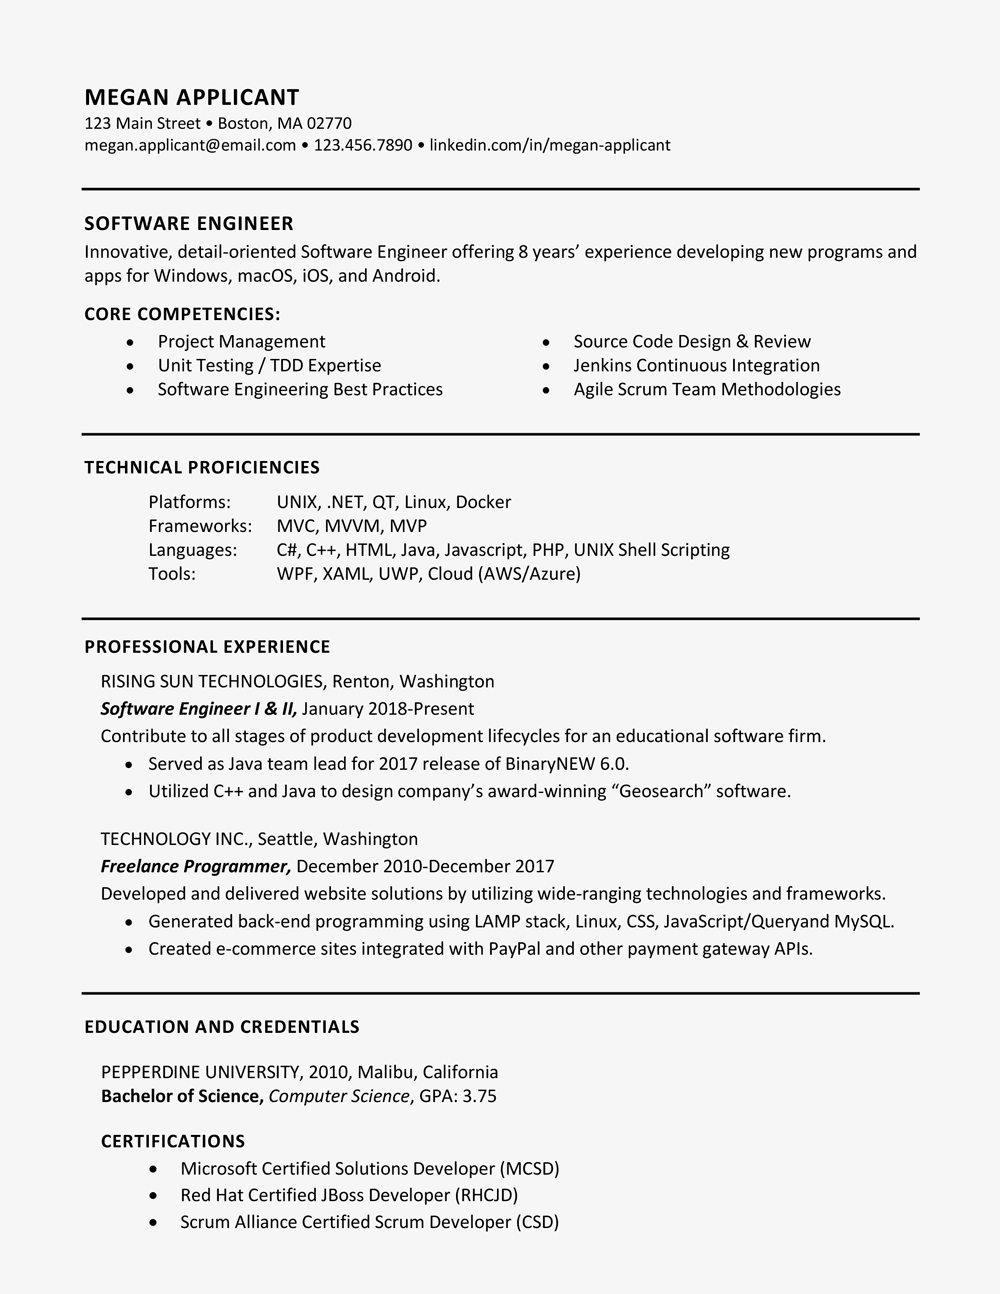 other skills in resume sample - skills and abilities examples choice image resume cover